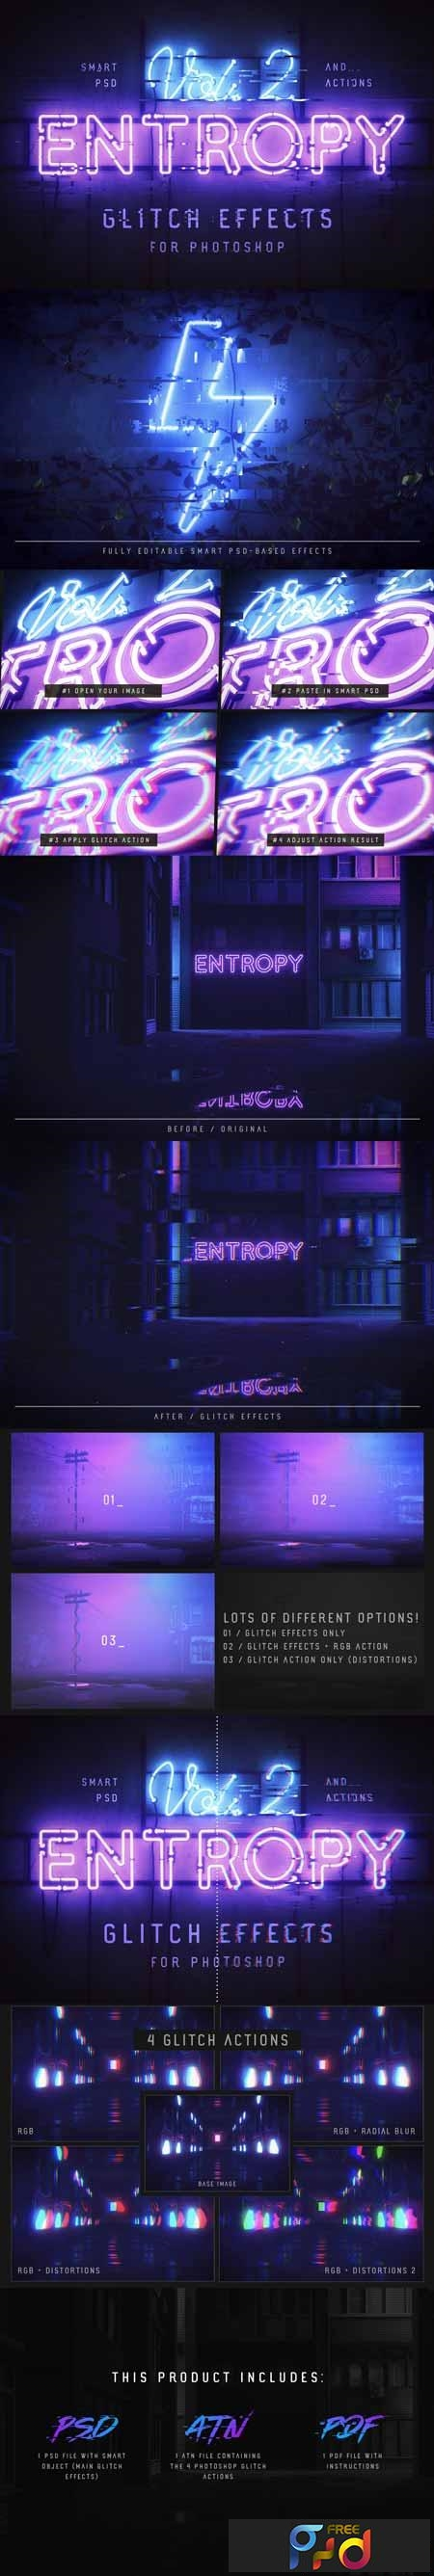 Entropy Volume II PS glitch effects 3376655 1